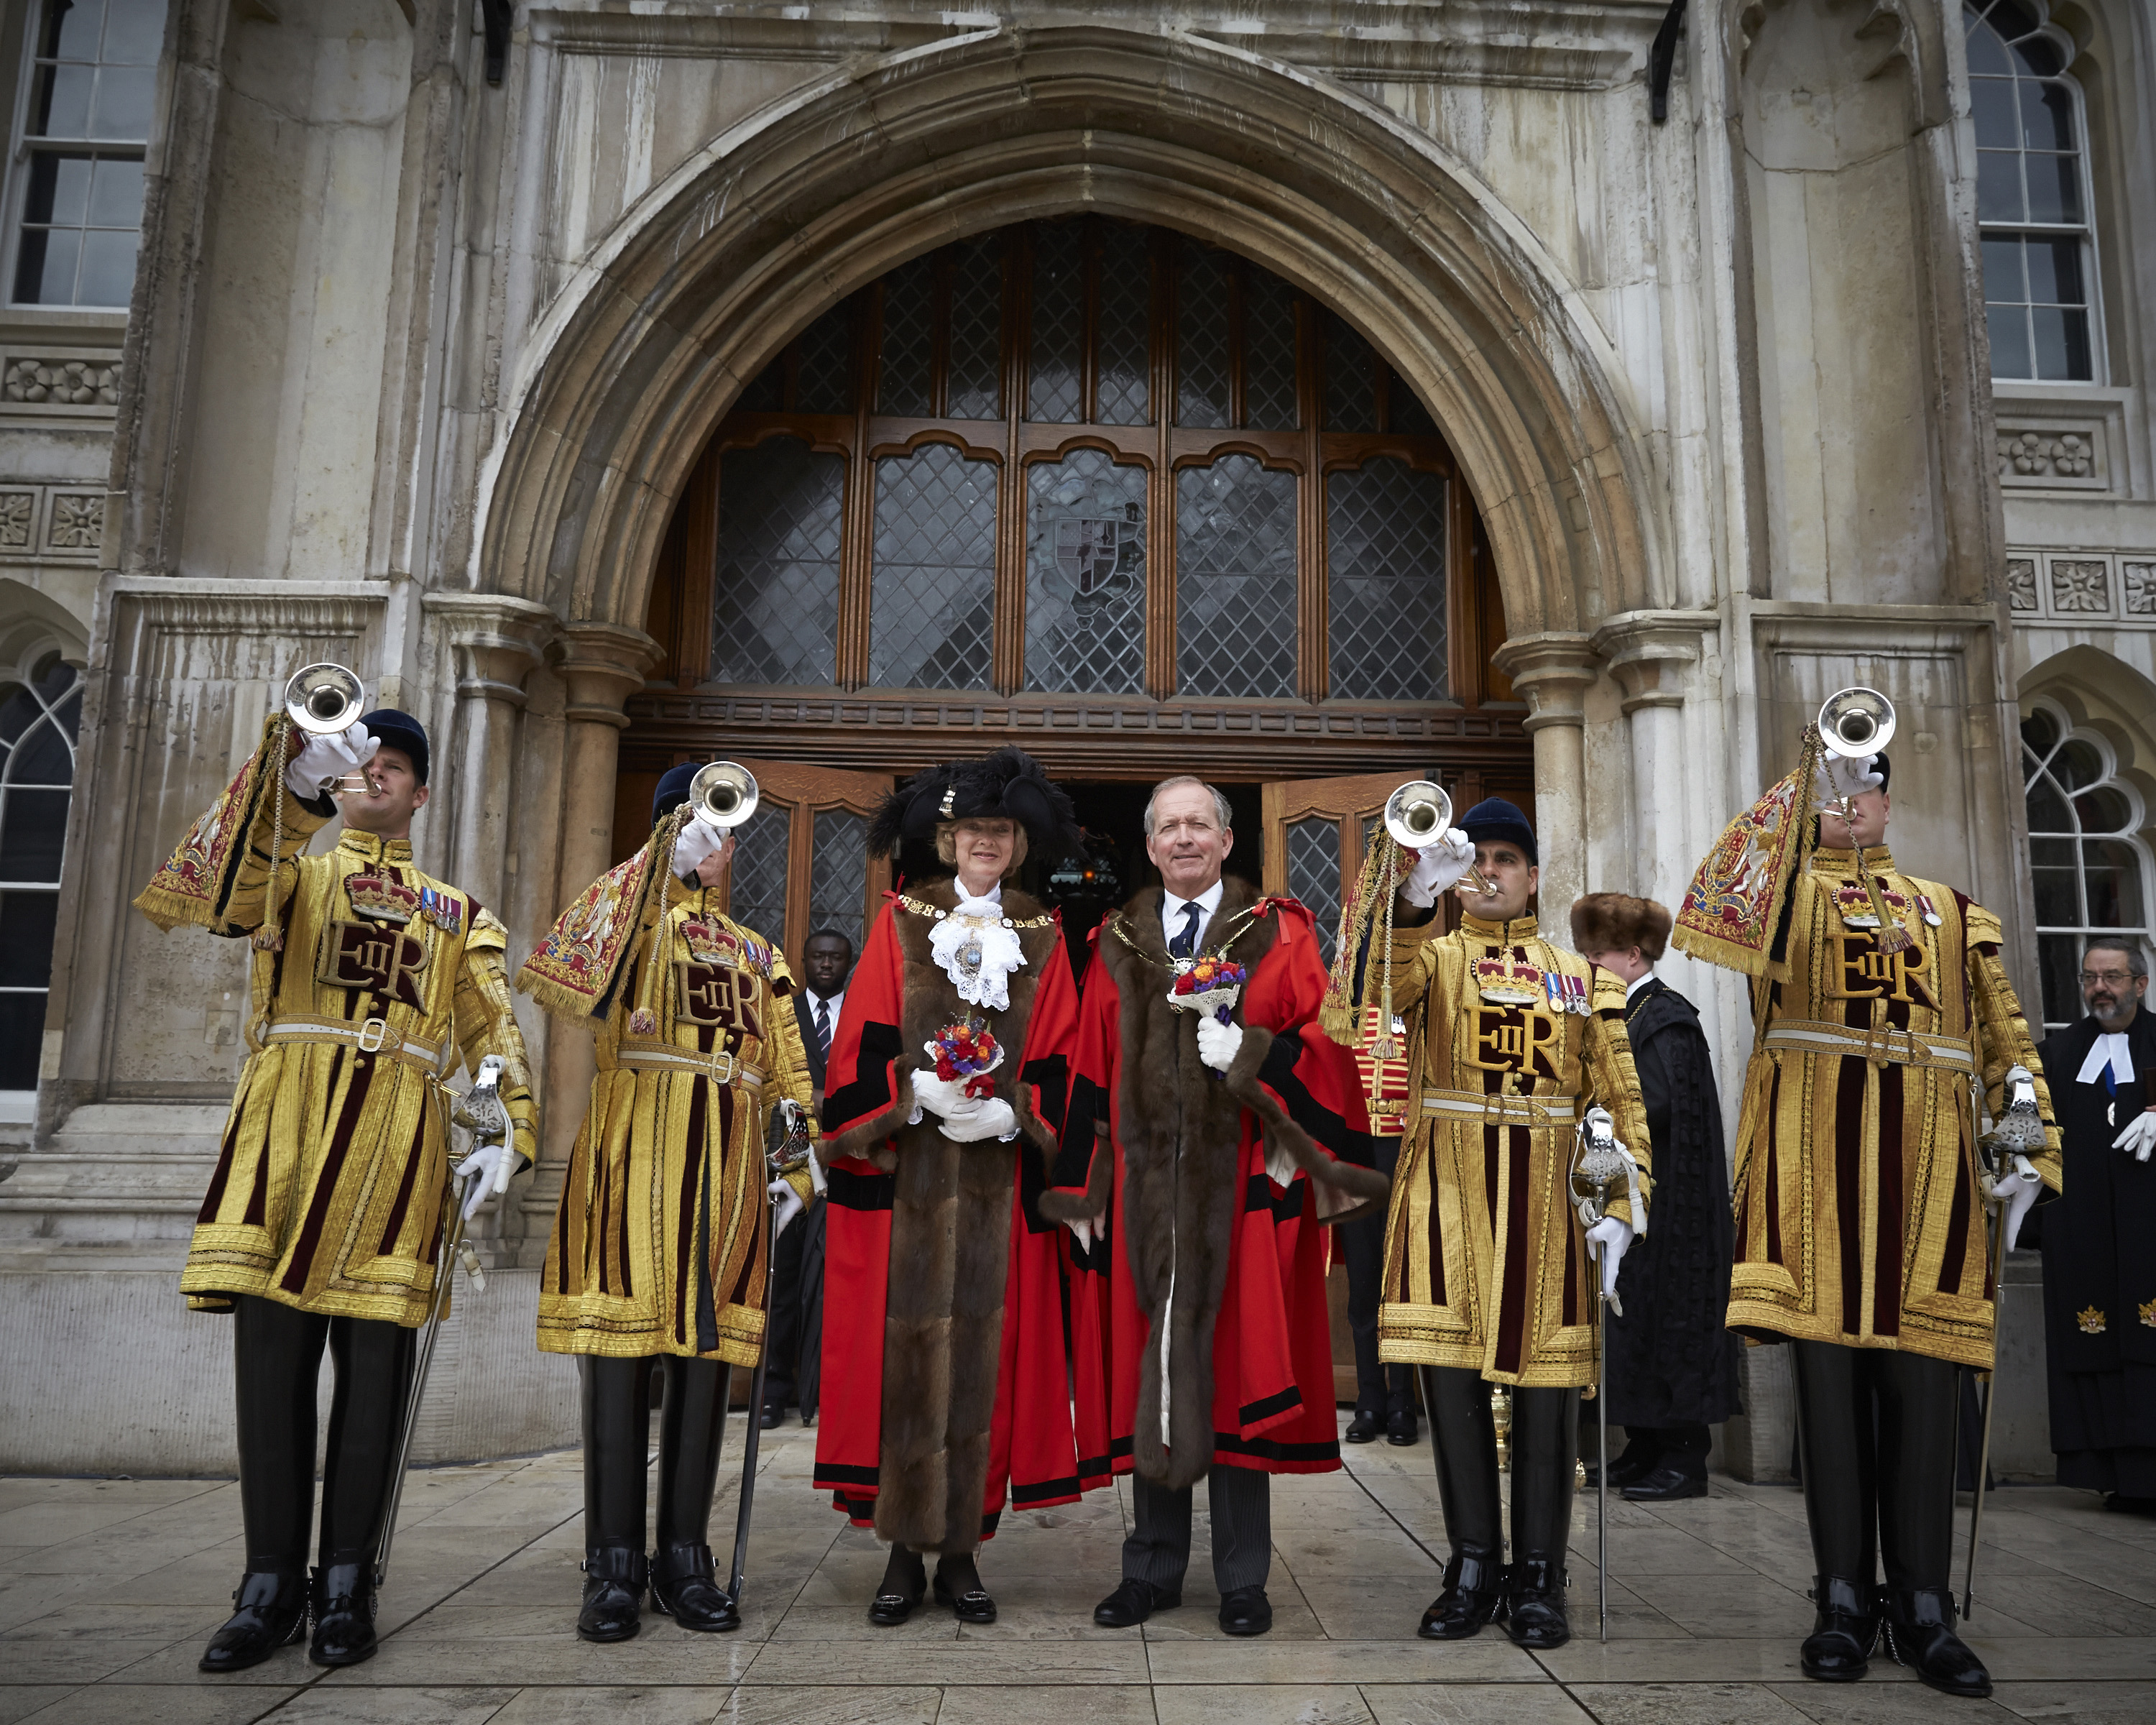 Alan Yarrow Elected New Lord Mayor of London.